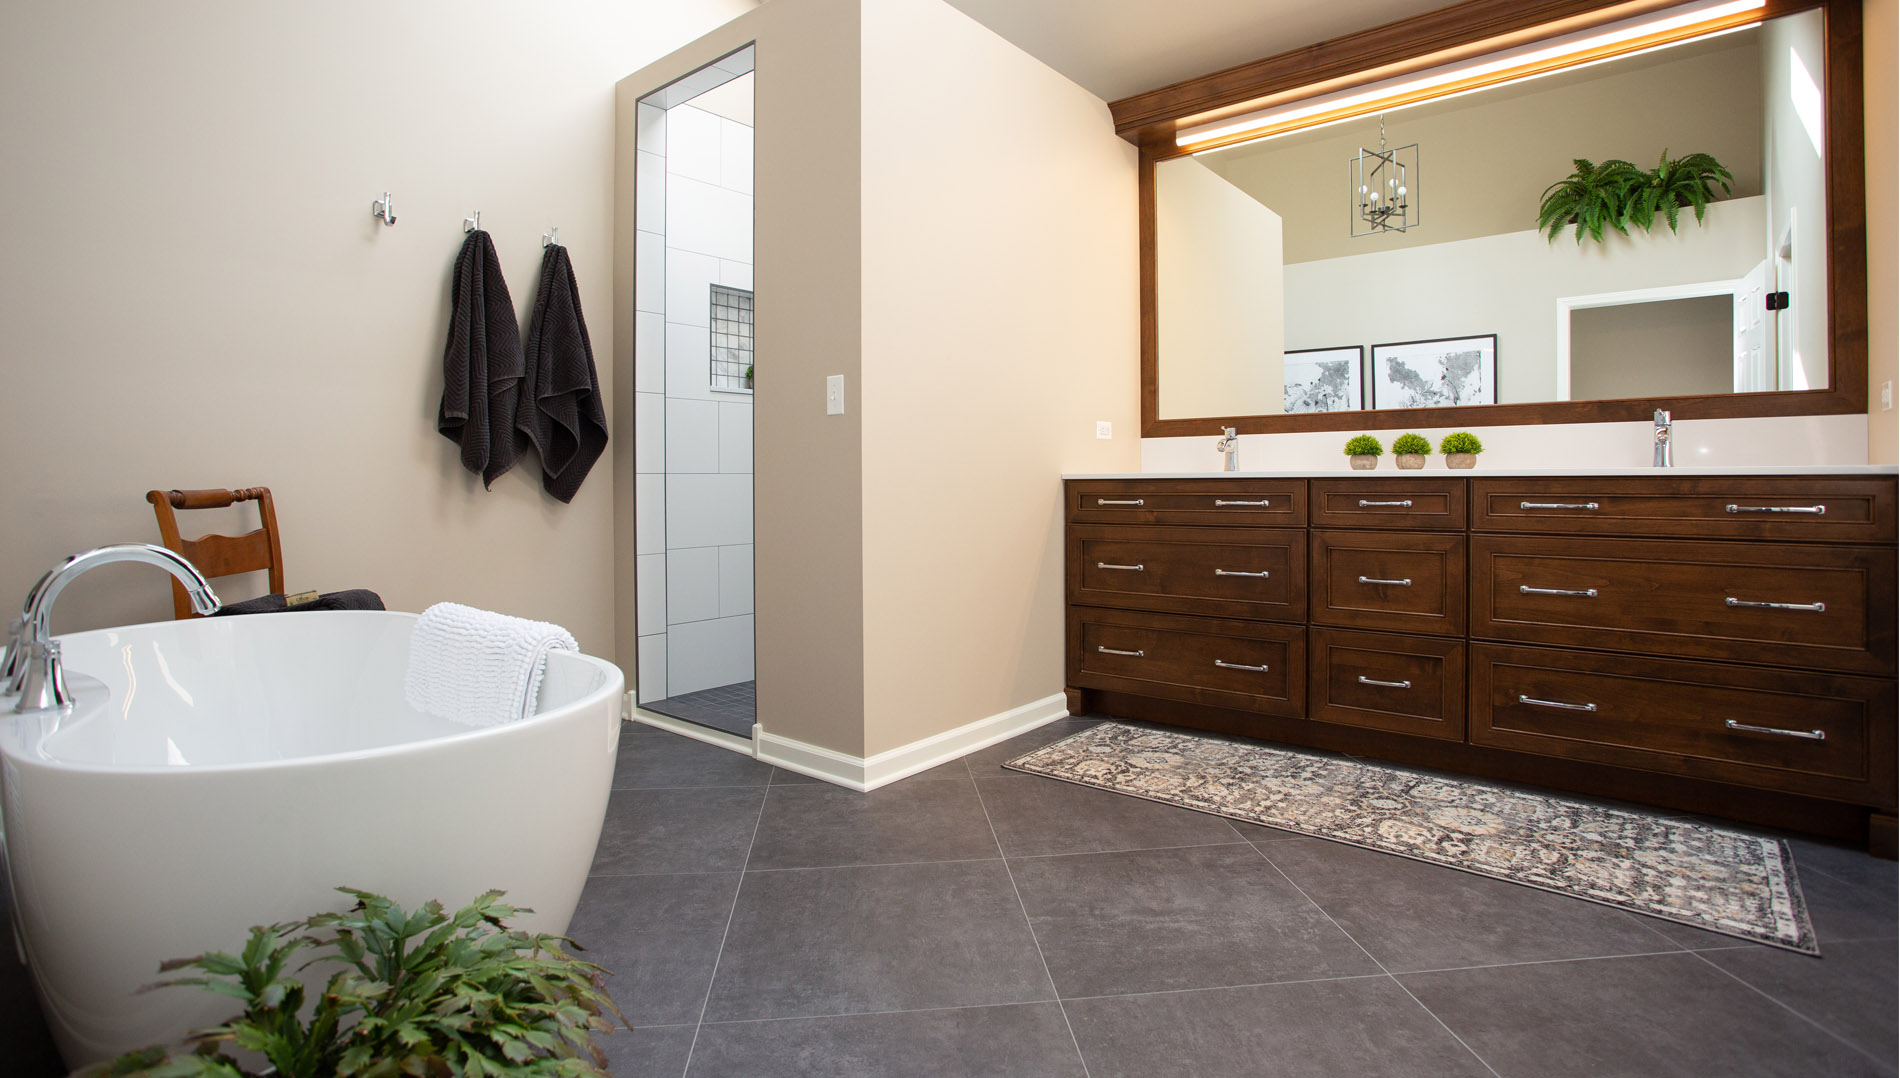 Master bathroom with grey floor tile, walk in shower, standalone tub and double vanity.